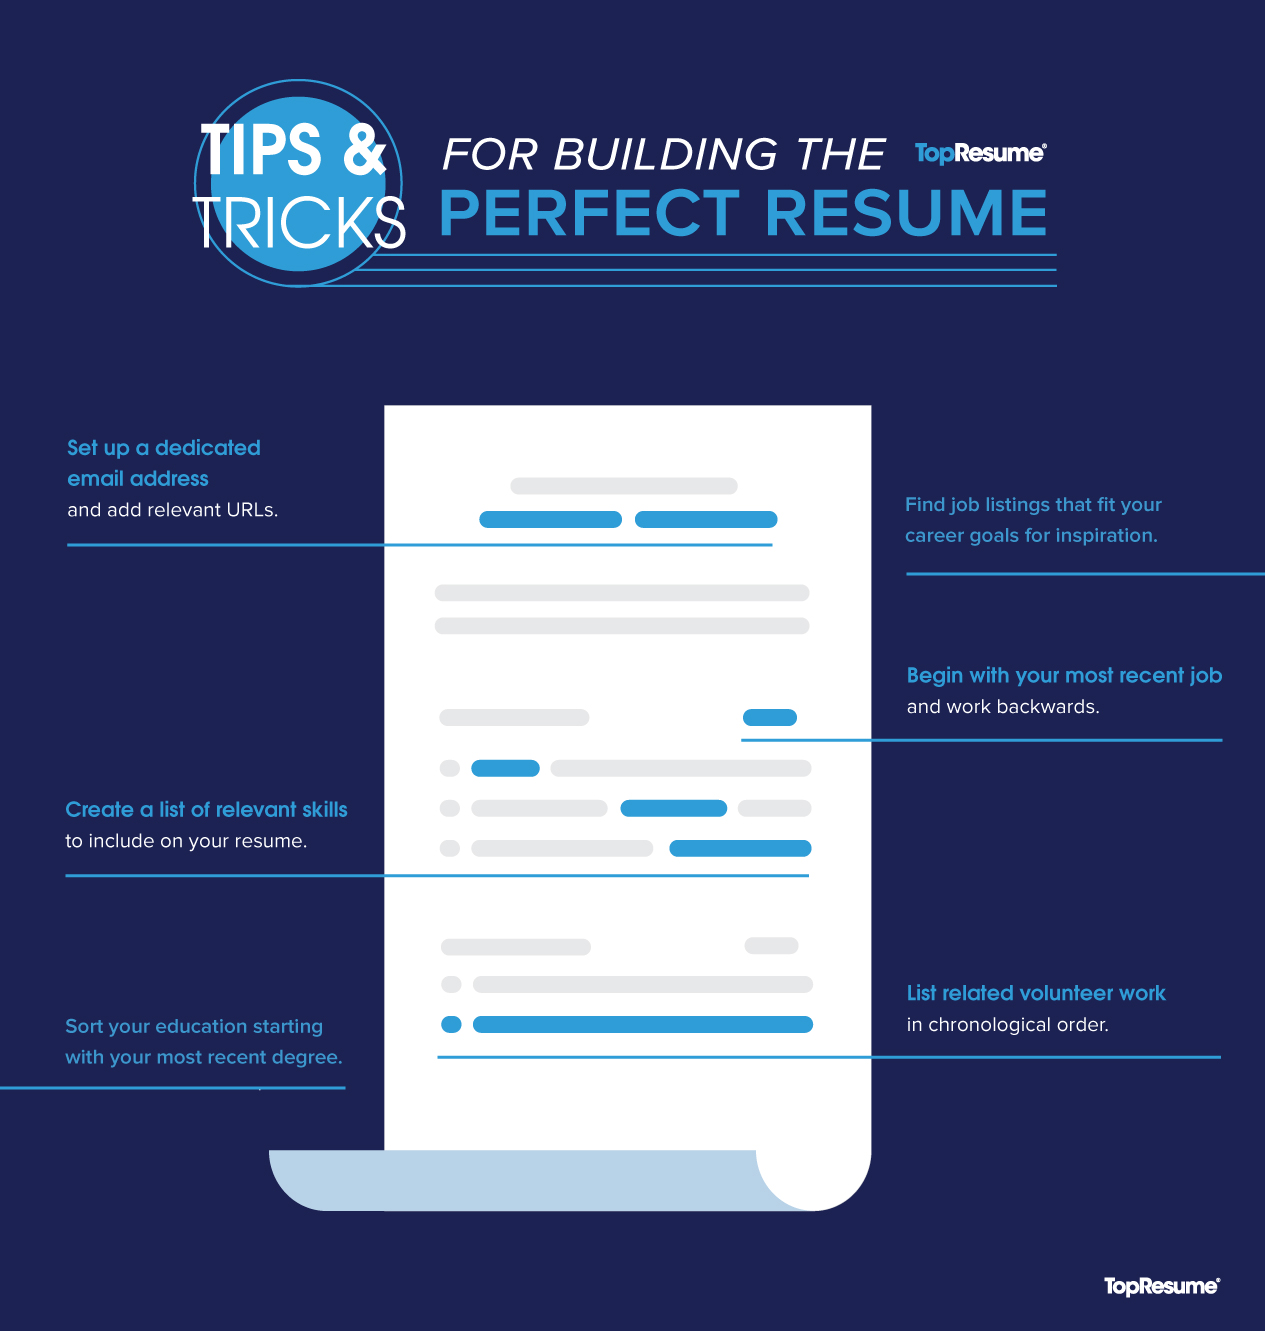 steps to writing the perfect resume topresume creating 11stepsinfographic bullet points Resume Creating The Perfect Resume